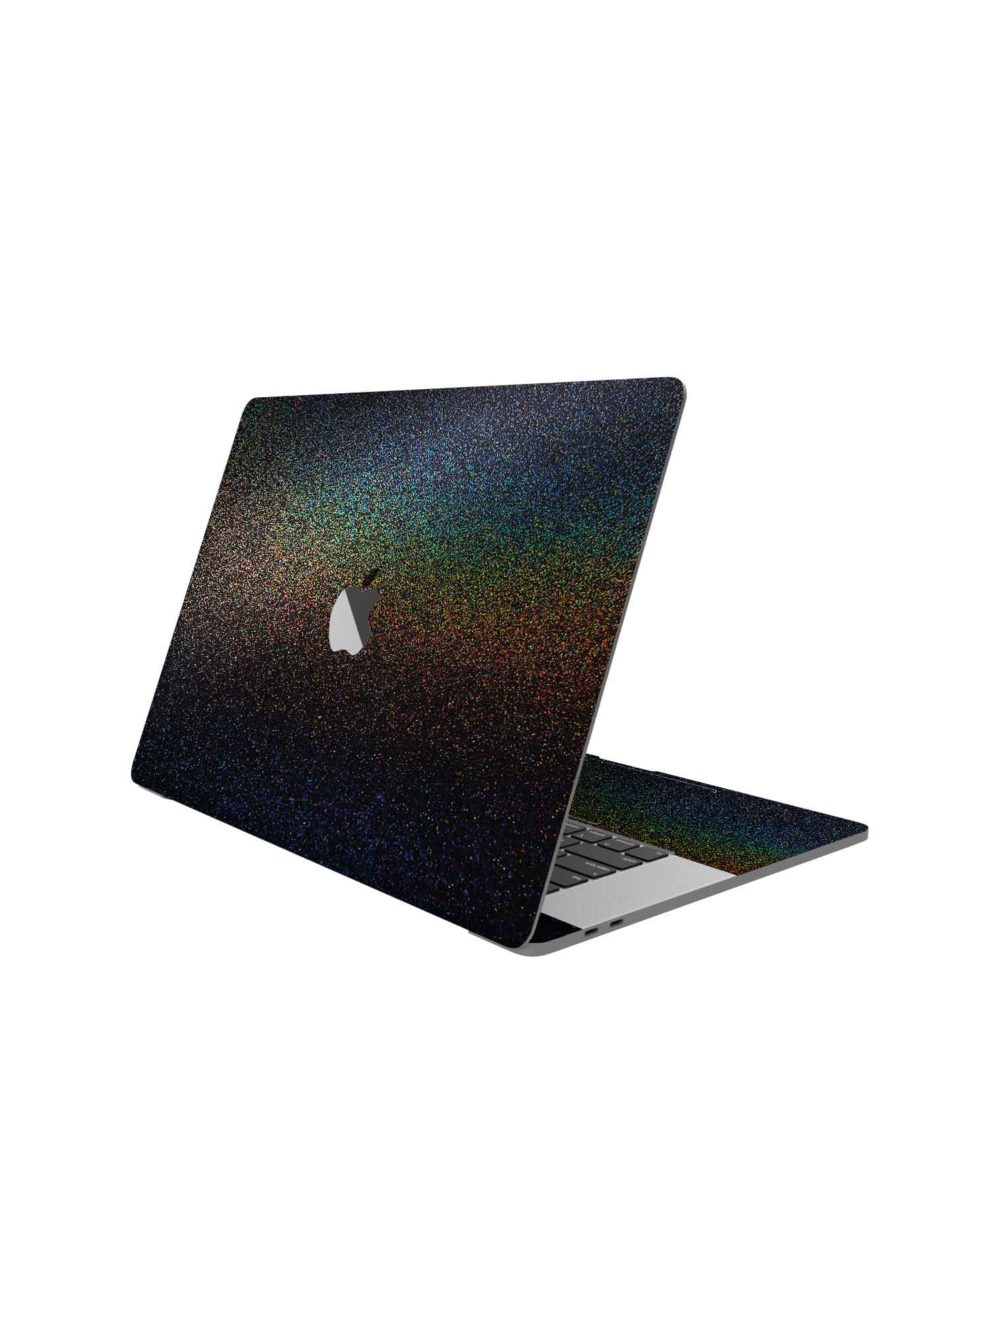 Cosmic Morpheus Skin Macbook Pro M1 Skin Wrap Cover